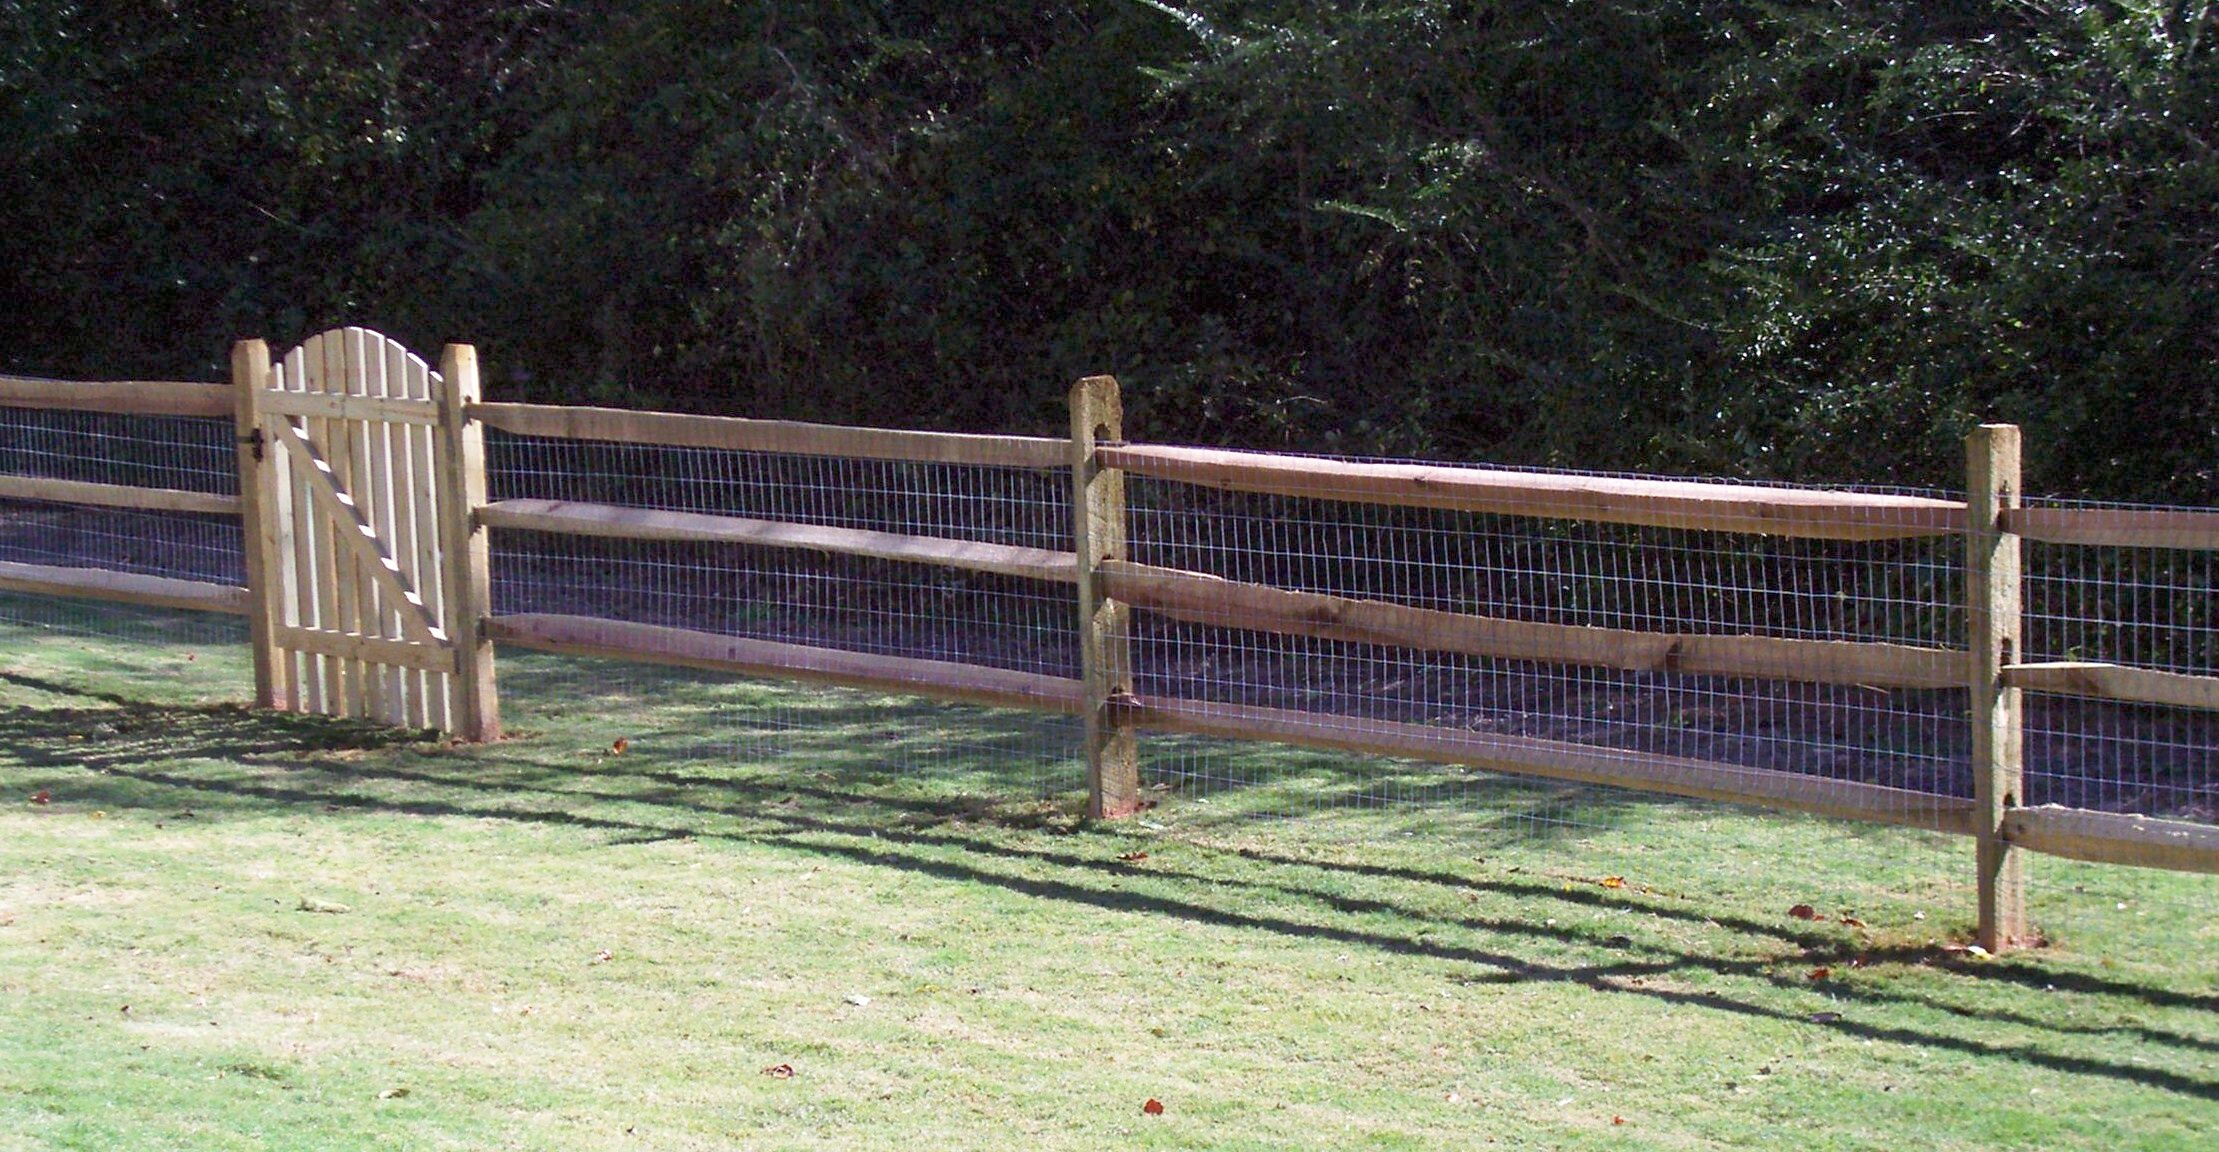 Custom Wood Ranch Rail Fence With Wire For Added